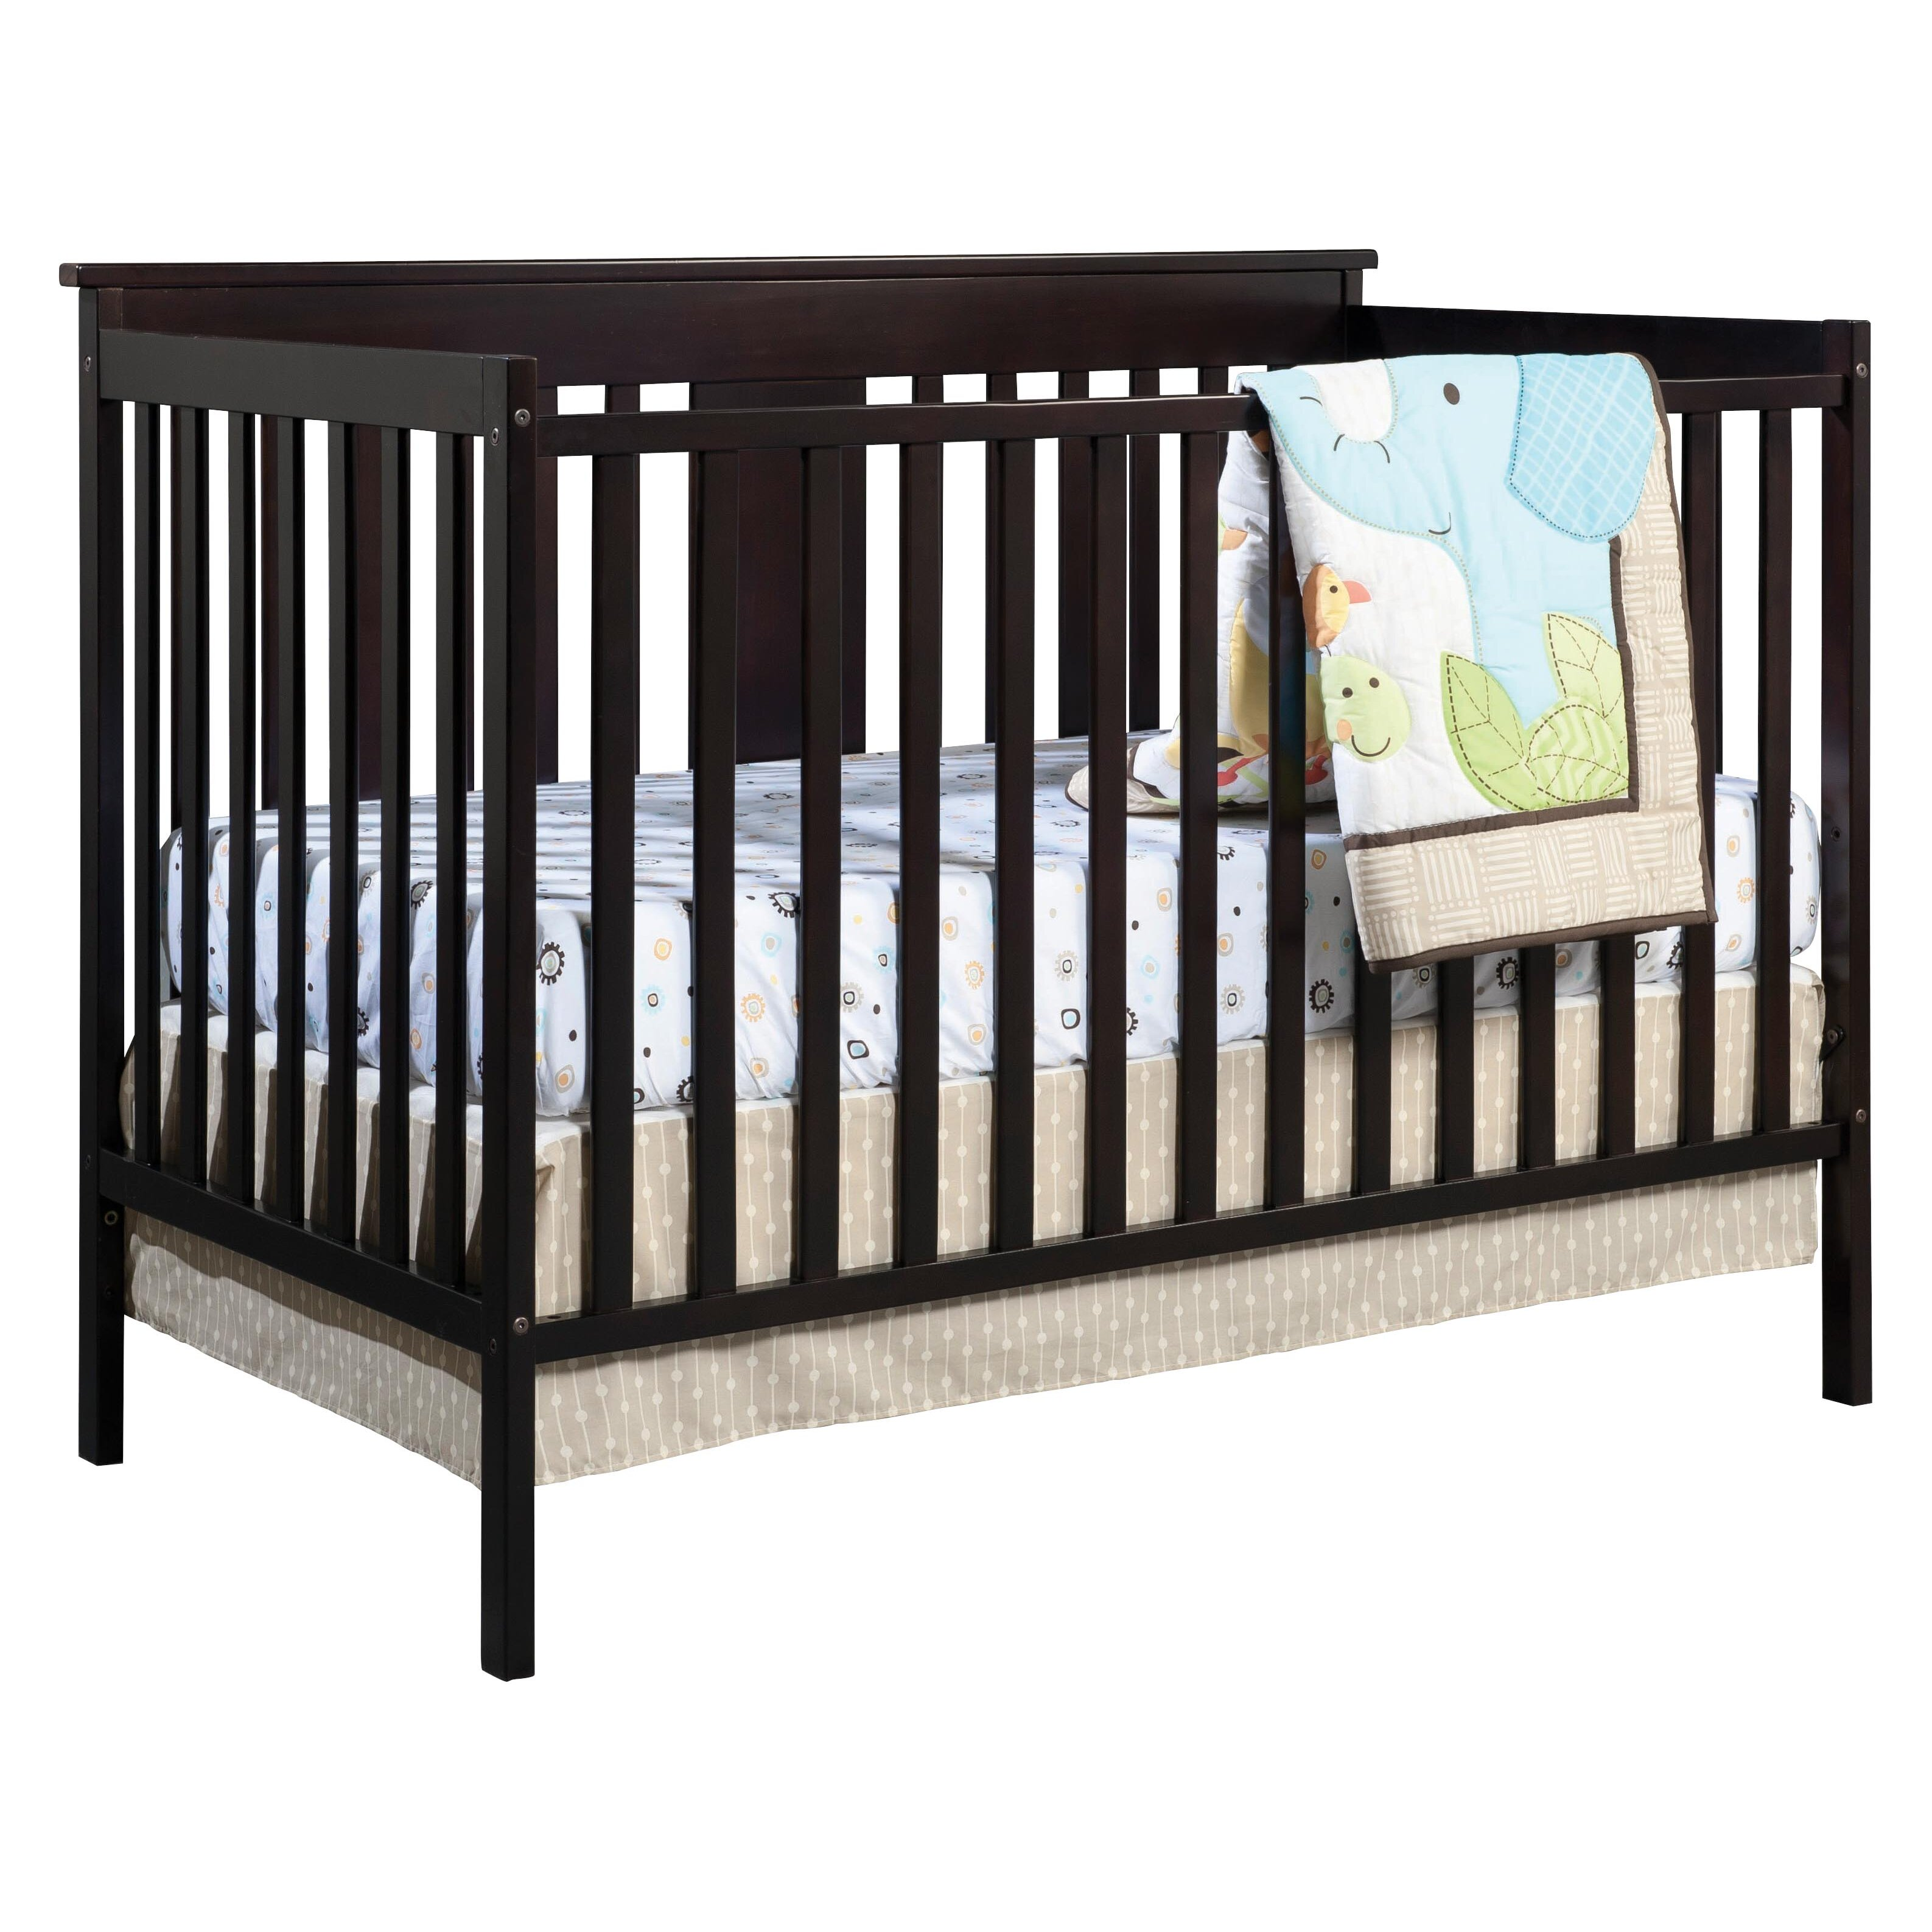 Storkcraft Nursery Furniture Storkcraft Mission Ridge Stages 3-in-1 Convertible Crib & Reviews ...